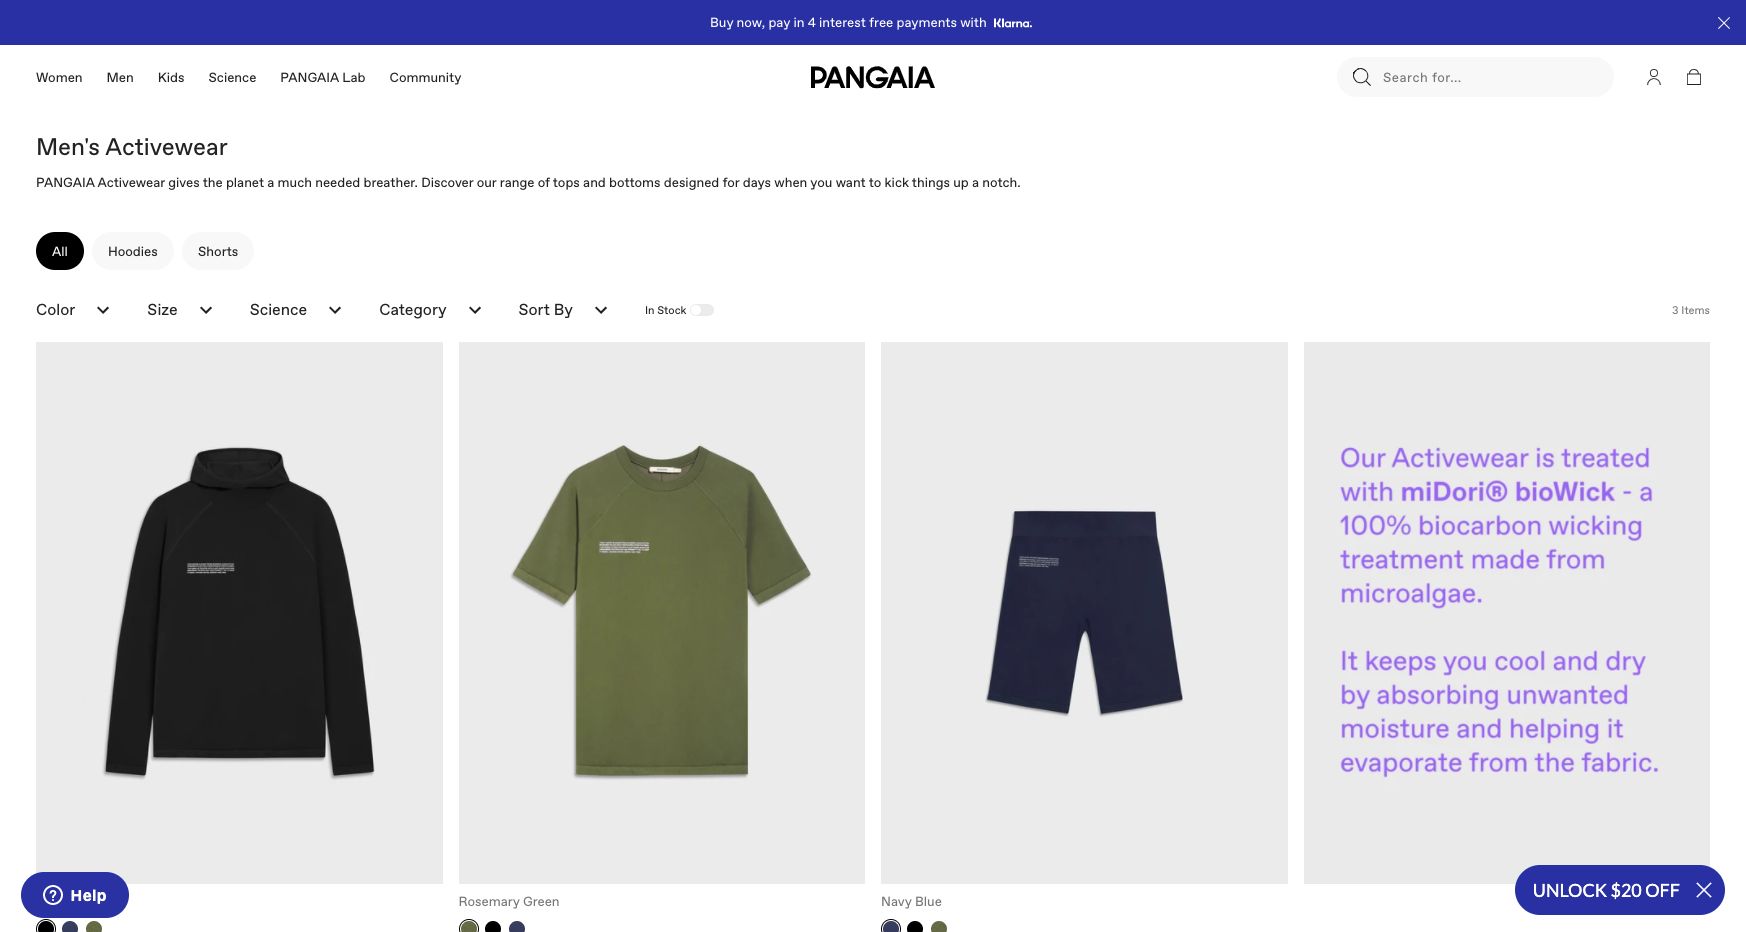 pangaia collection page men's activewear